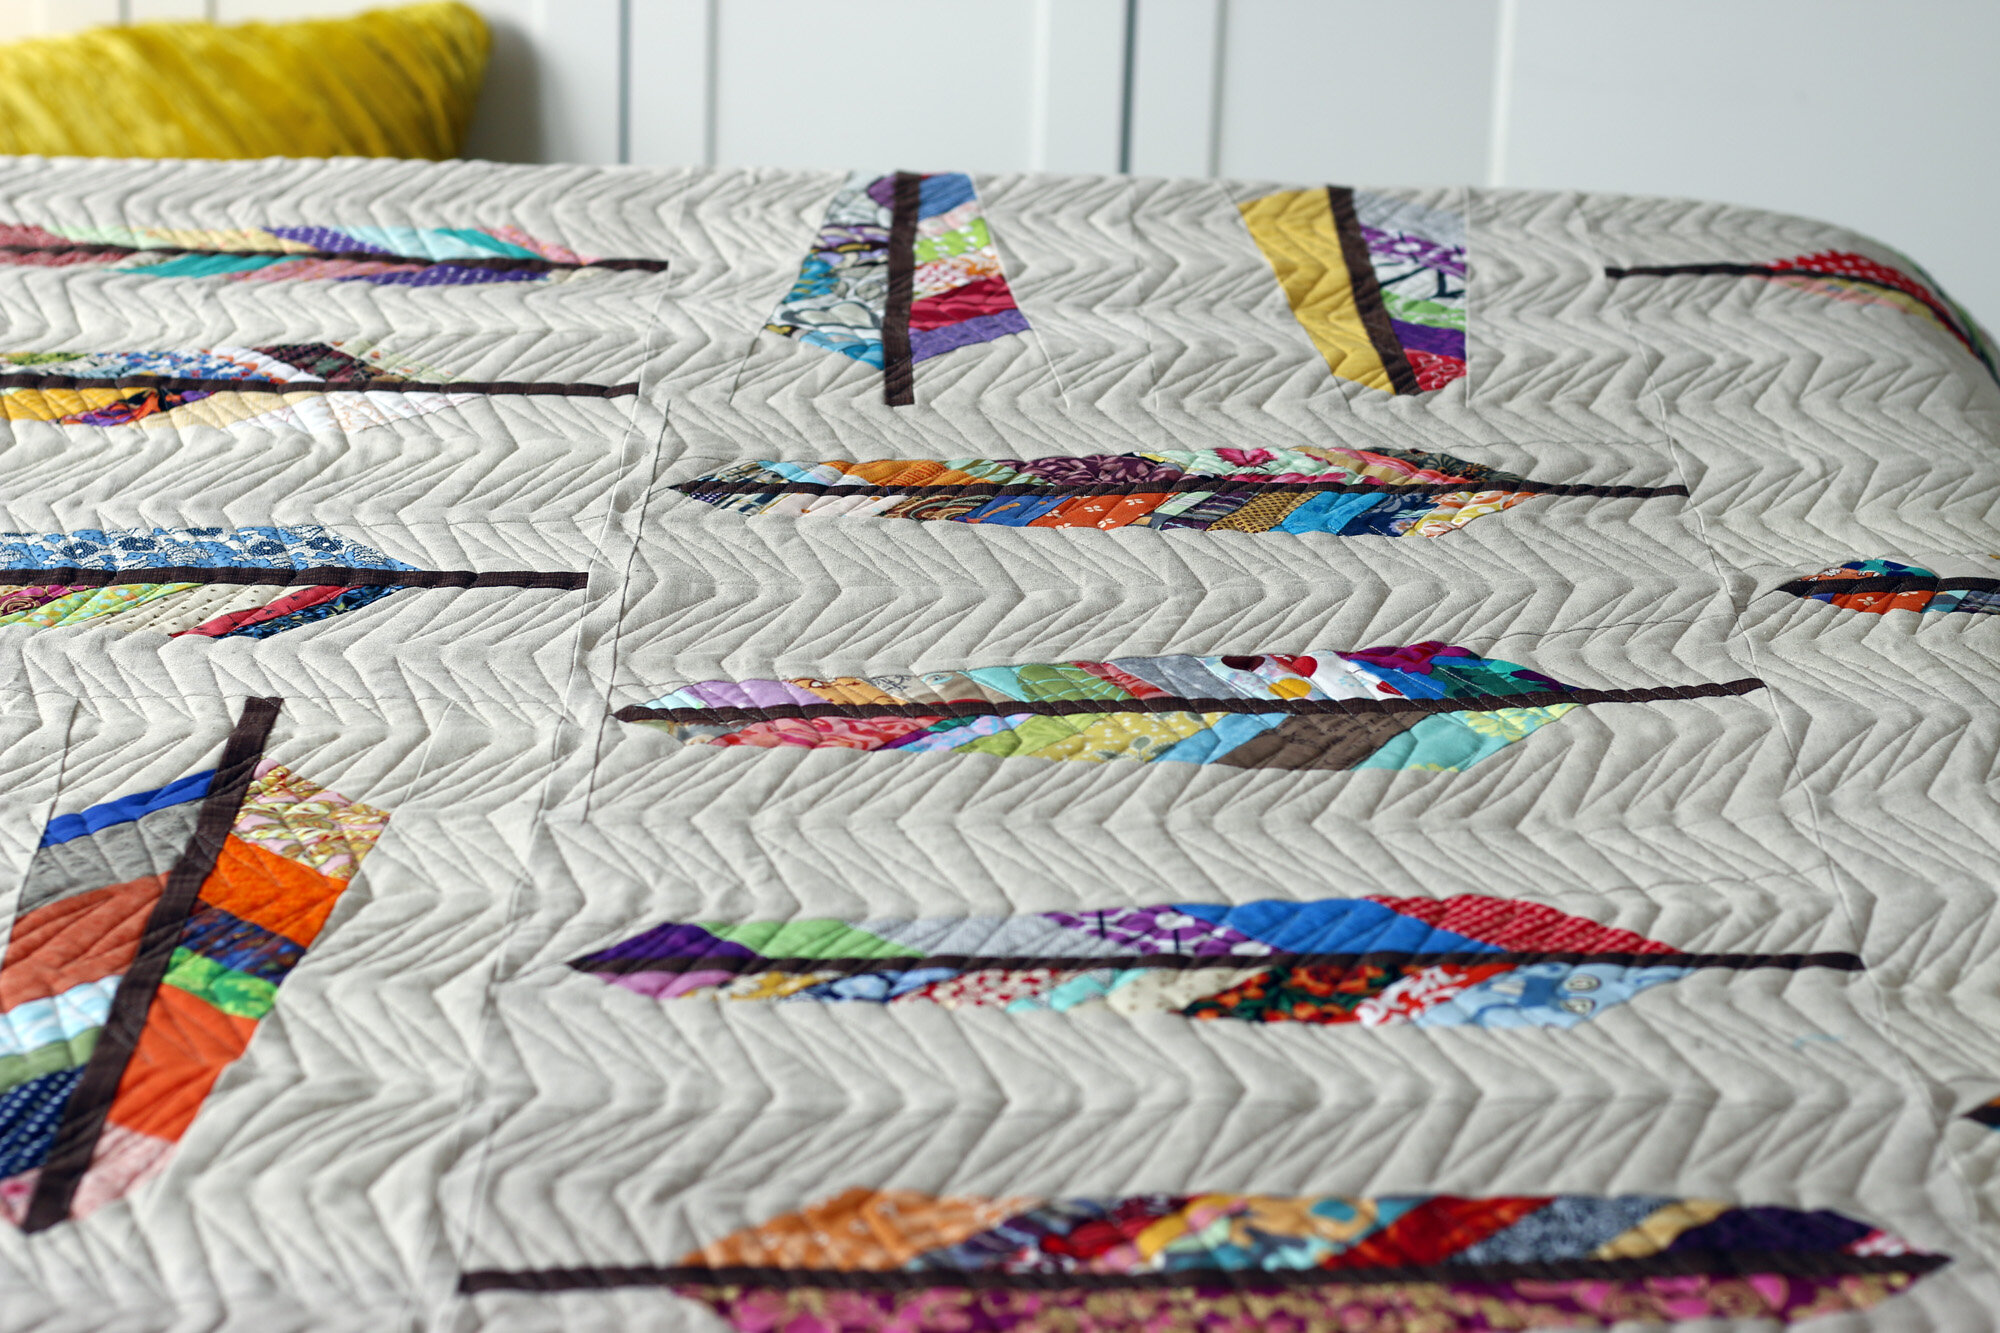 Feather Bed longarm quilted. Stitched in Color.jpg